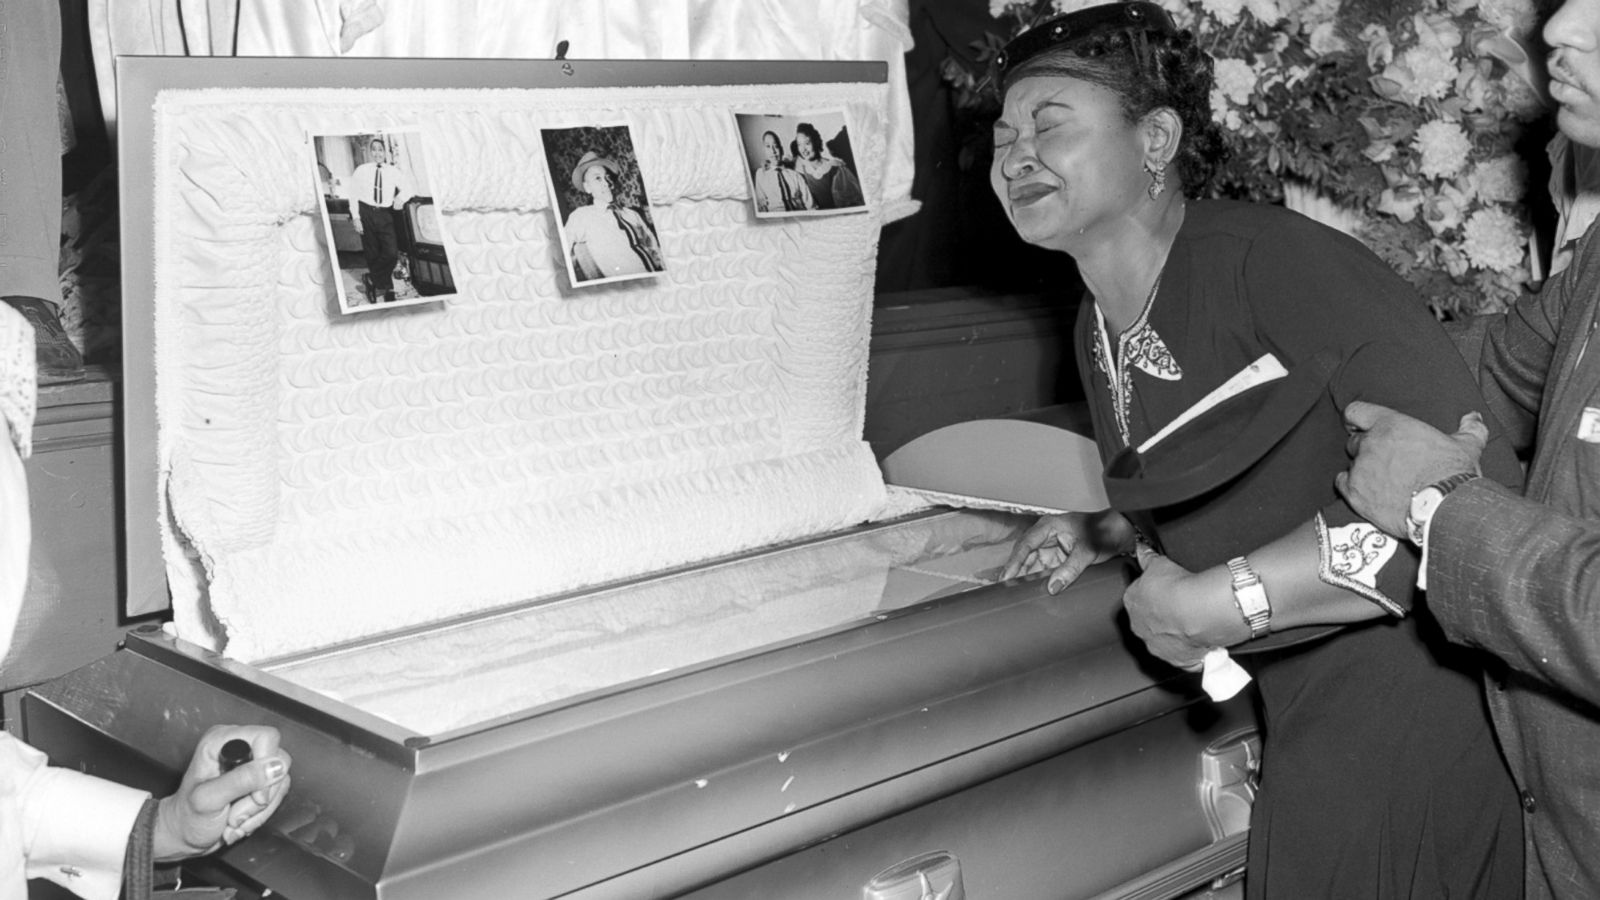 Mamie Till Bradley crying over casket